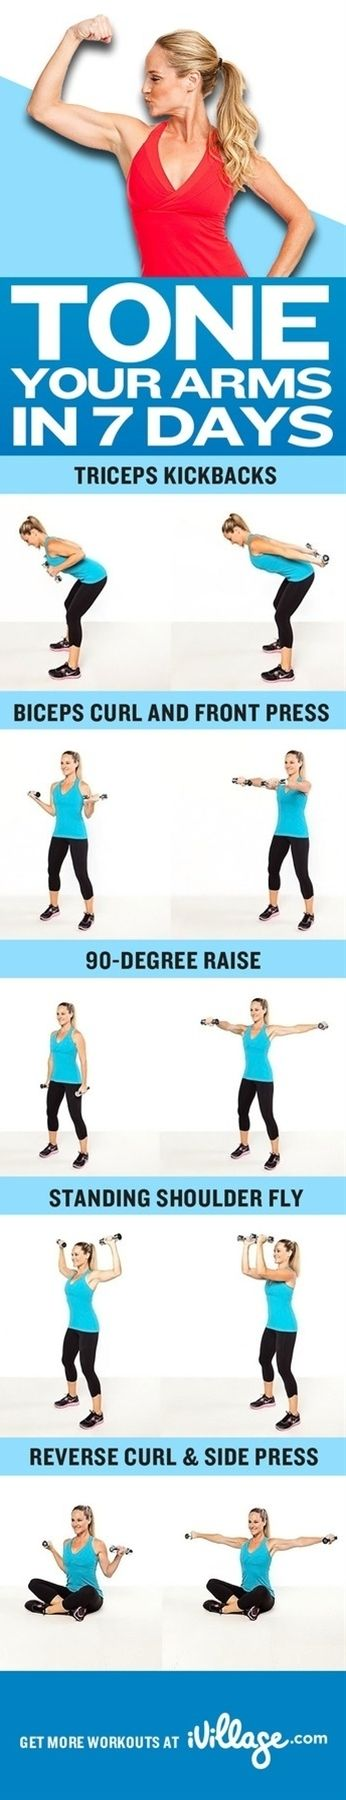 tone your arms in 7 days - Click image to find more health posts